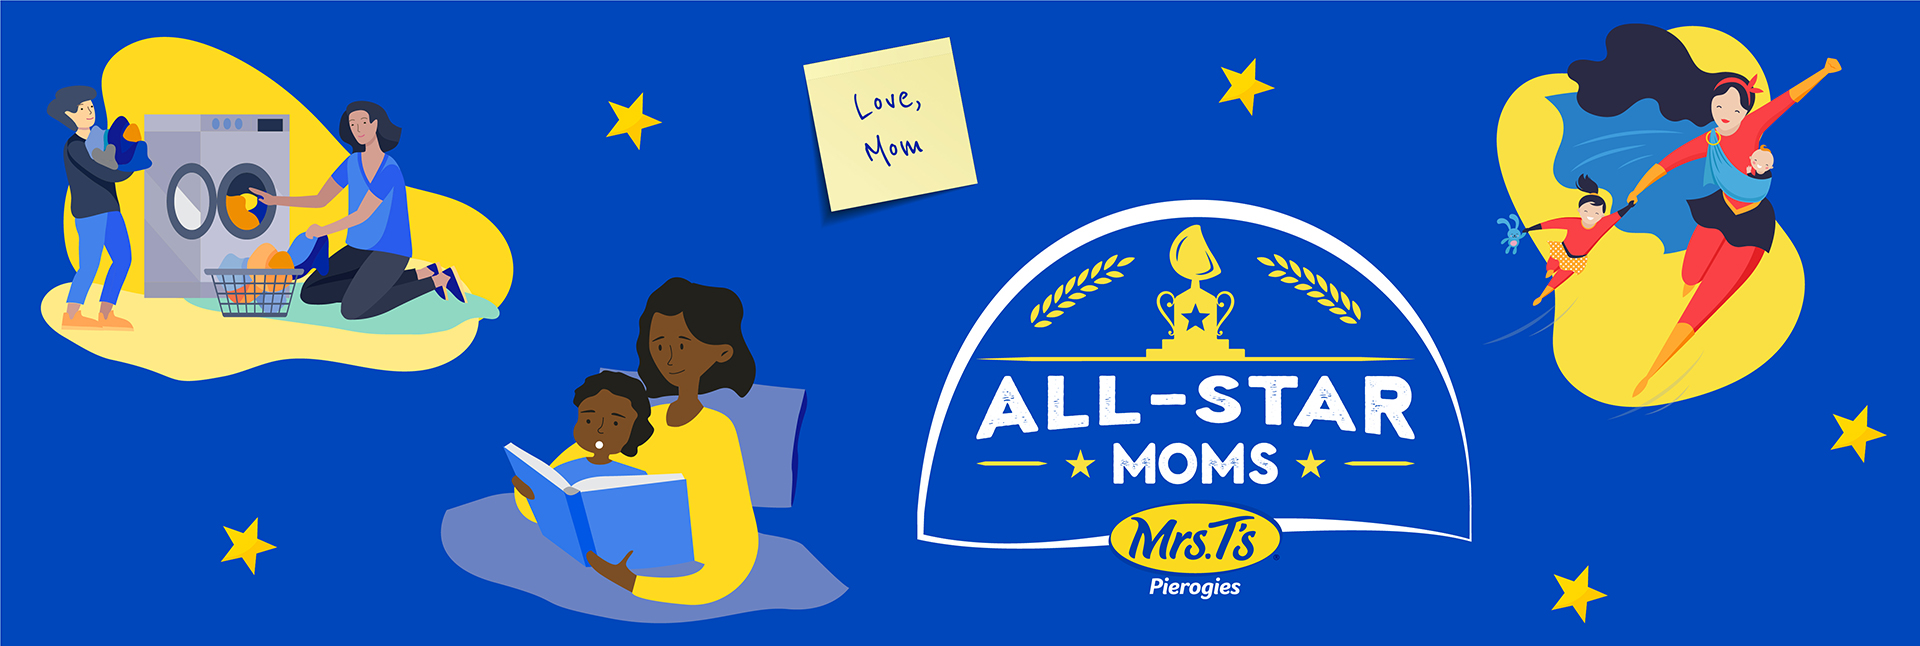 Mrs. T's Pierogies All-Star Moms banner